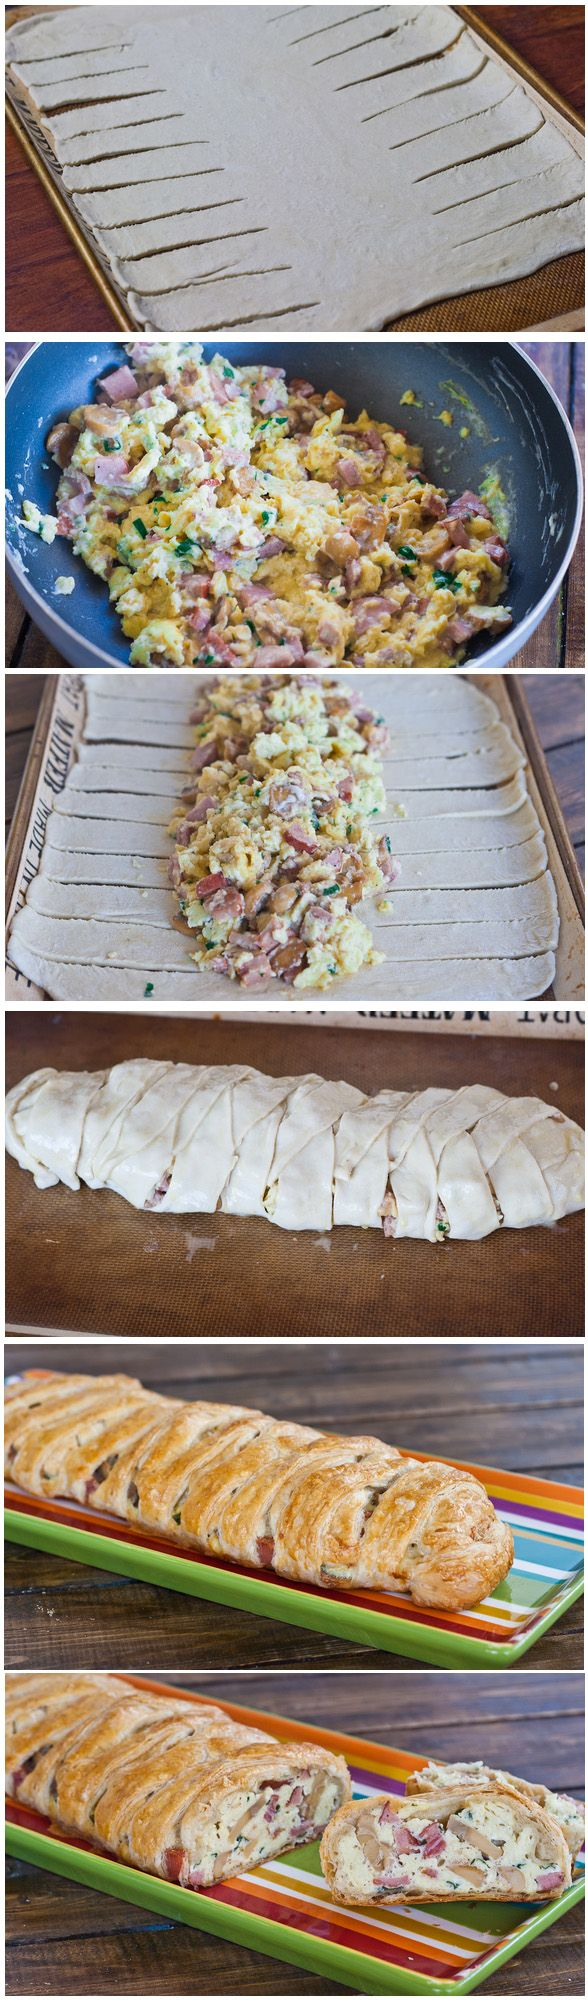 An entire breakfast or brunch wrapped in puff pastry. Perfect for Easter or Christmas Brunch.